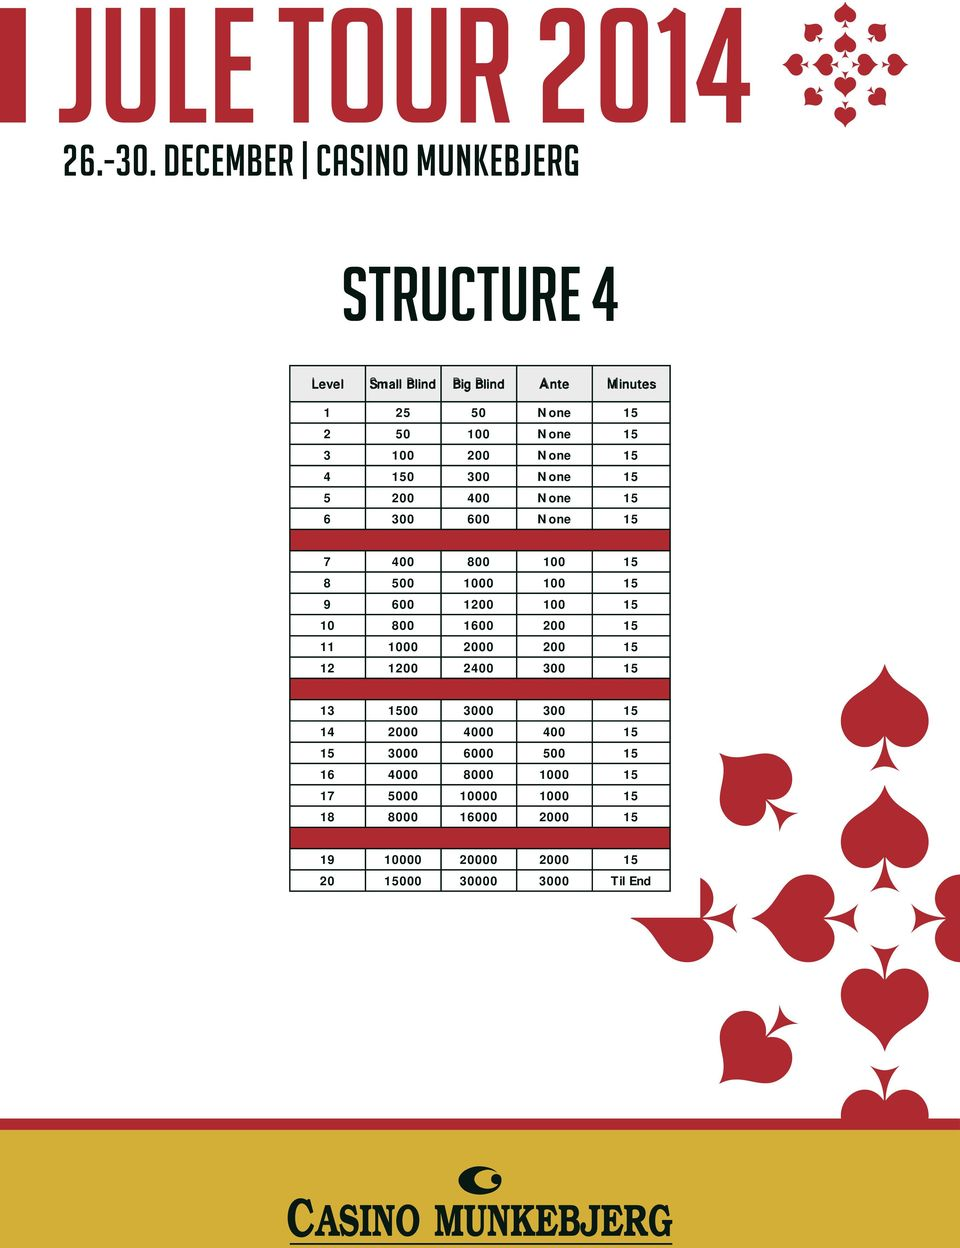 december Casino 26 20000Munkebjerg 40000 5000 30/45 27 25000 50000 5000 30/45 28 30000 60000 5000 30/45 29 40000 80000 10000 30/45 30 50000 100000 10000 Til End STRUCTURE 4 Structure 4 1 25 50 None